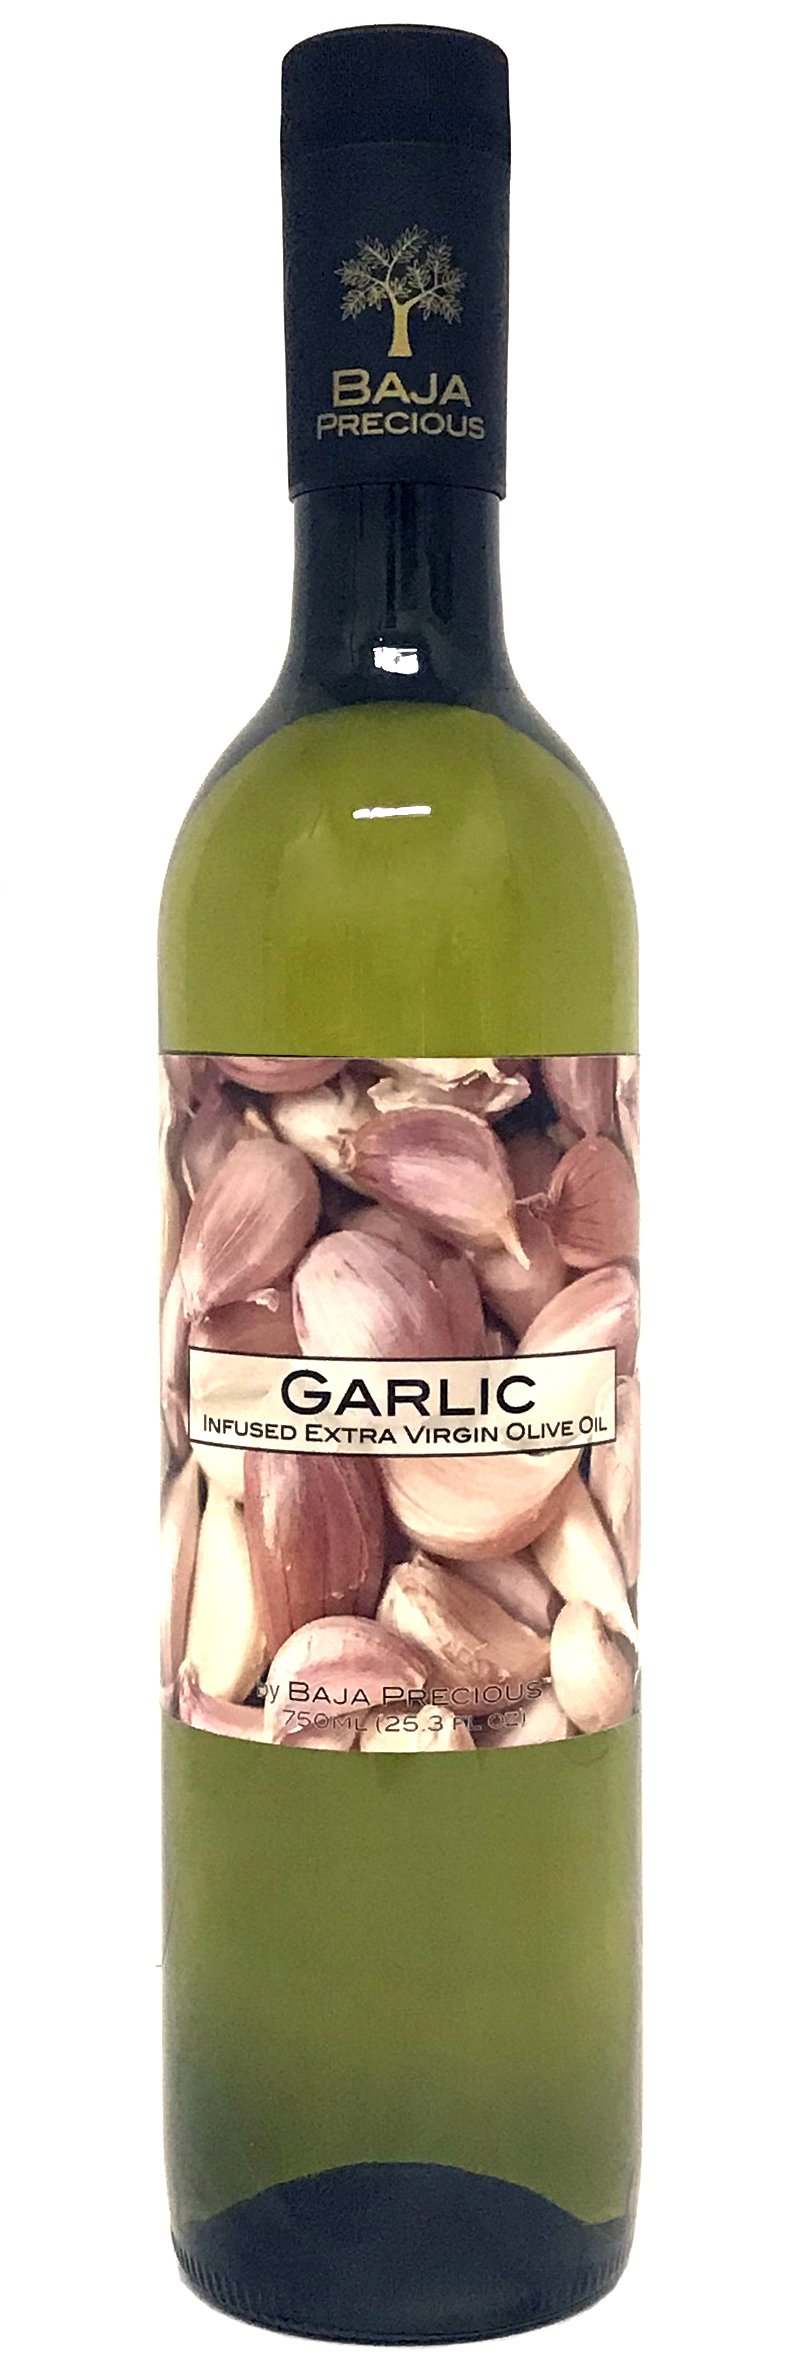 Baja Precious - Glorious Garlic Infused Extra Virgin Olive Oil (750ml Bottle)